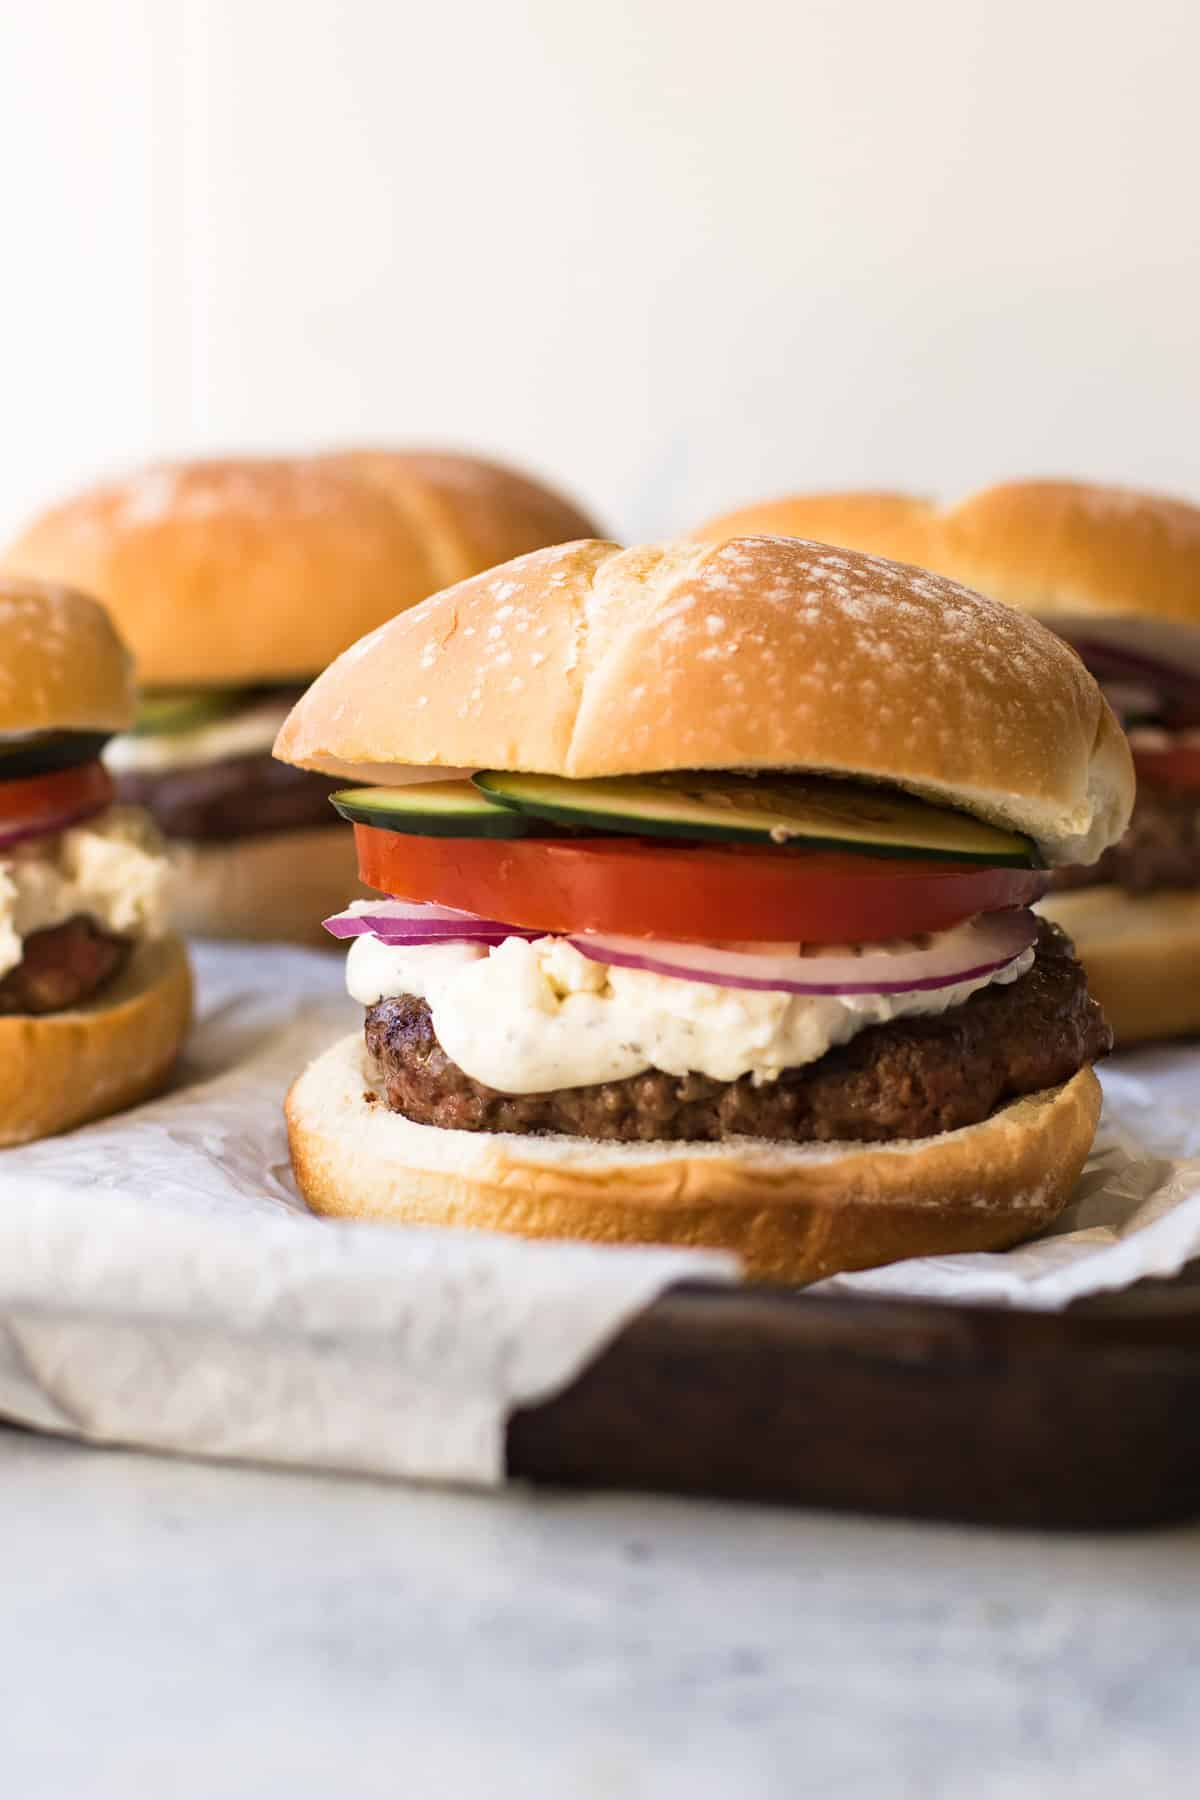 Greek Burger with toppings.